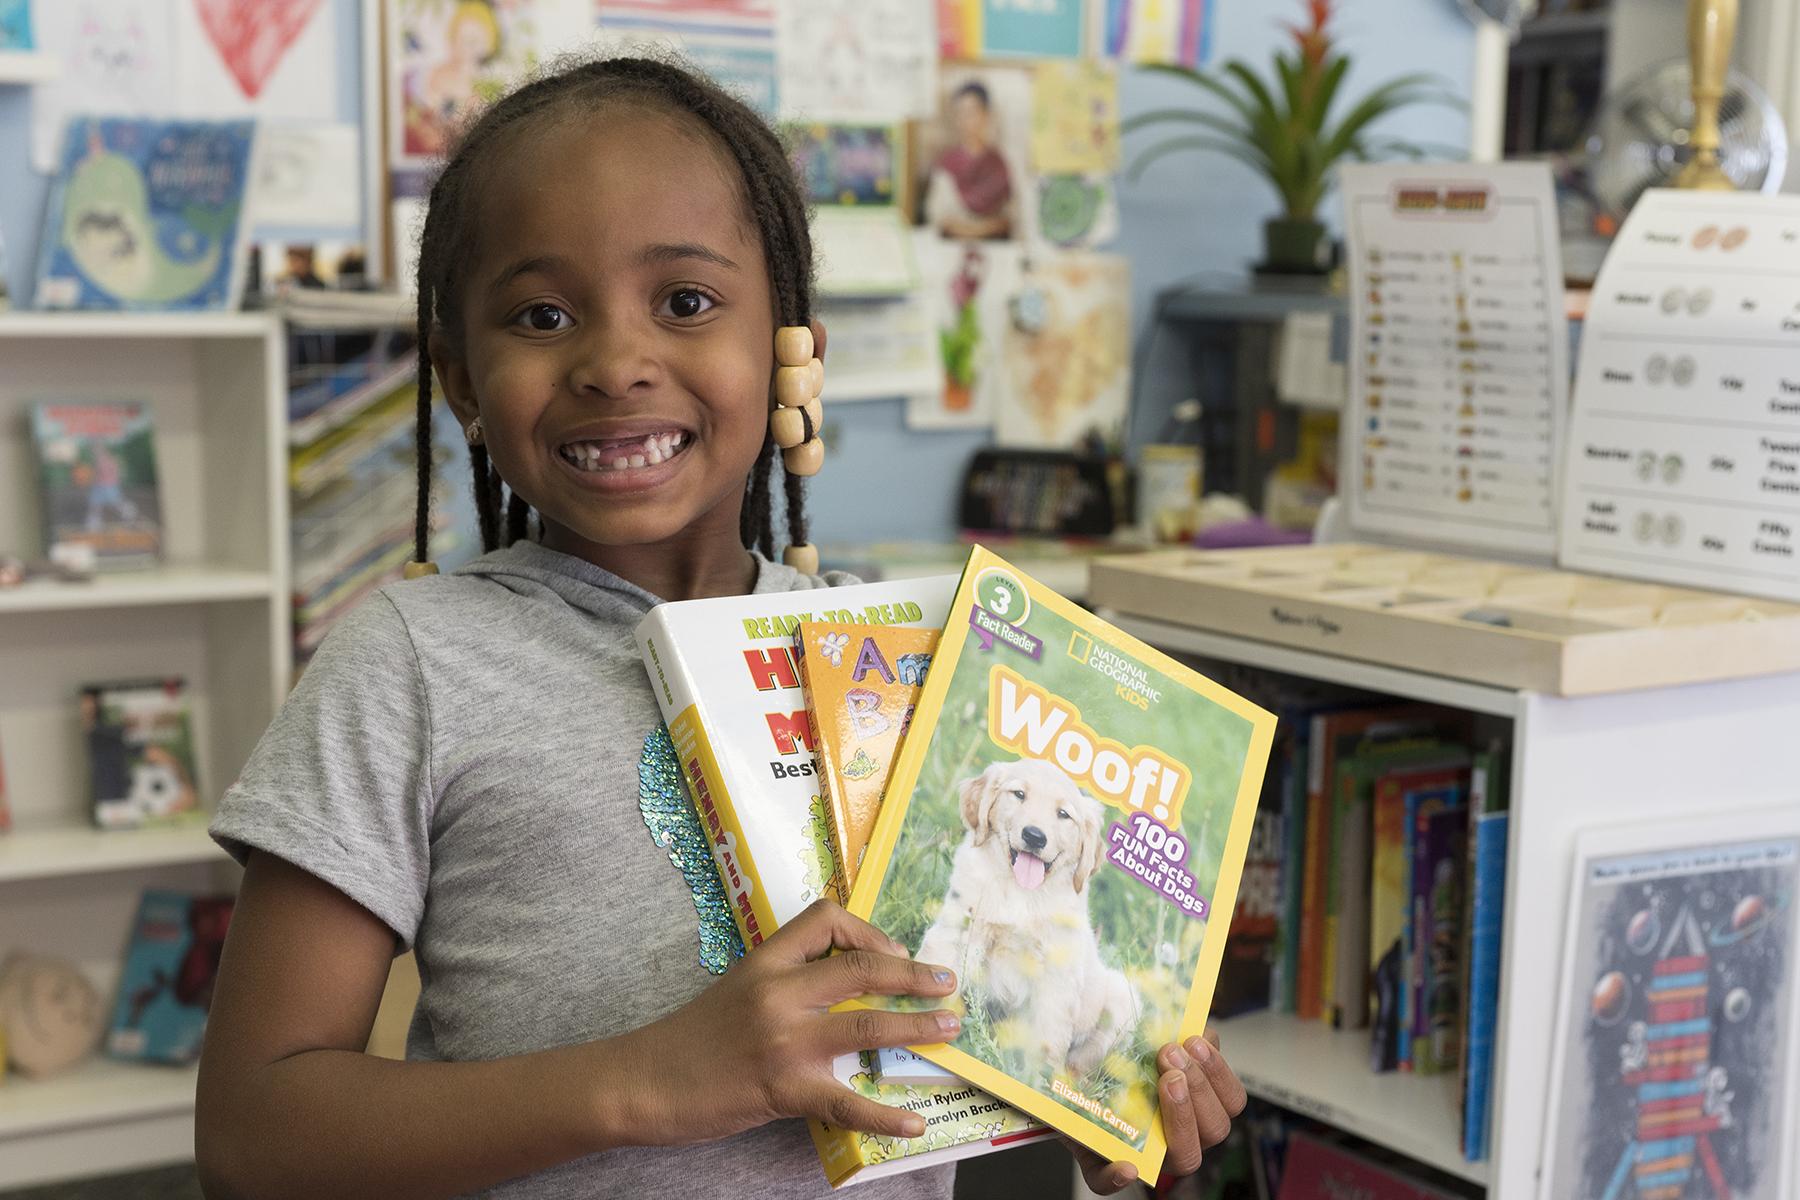 A student smiles with three books